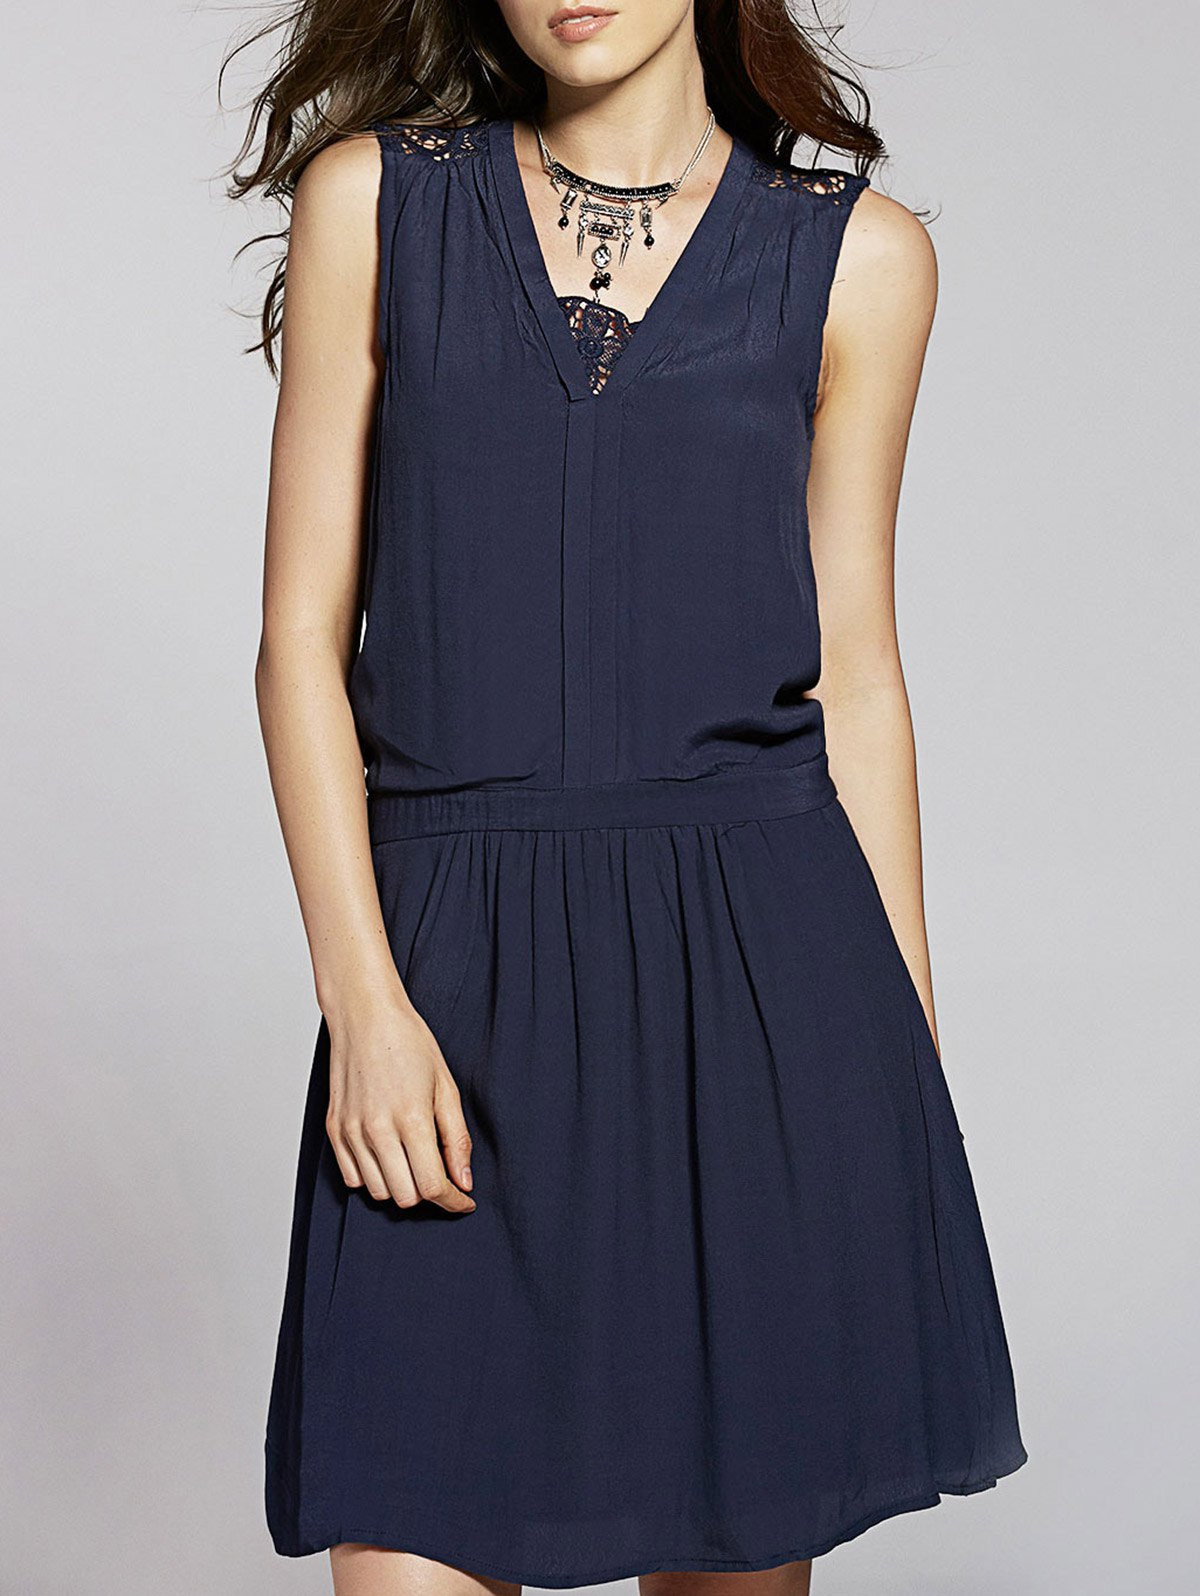 V-Neck Lace Spliced Sleeveless Dress